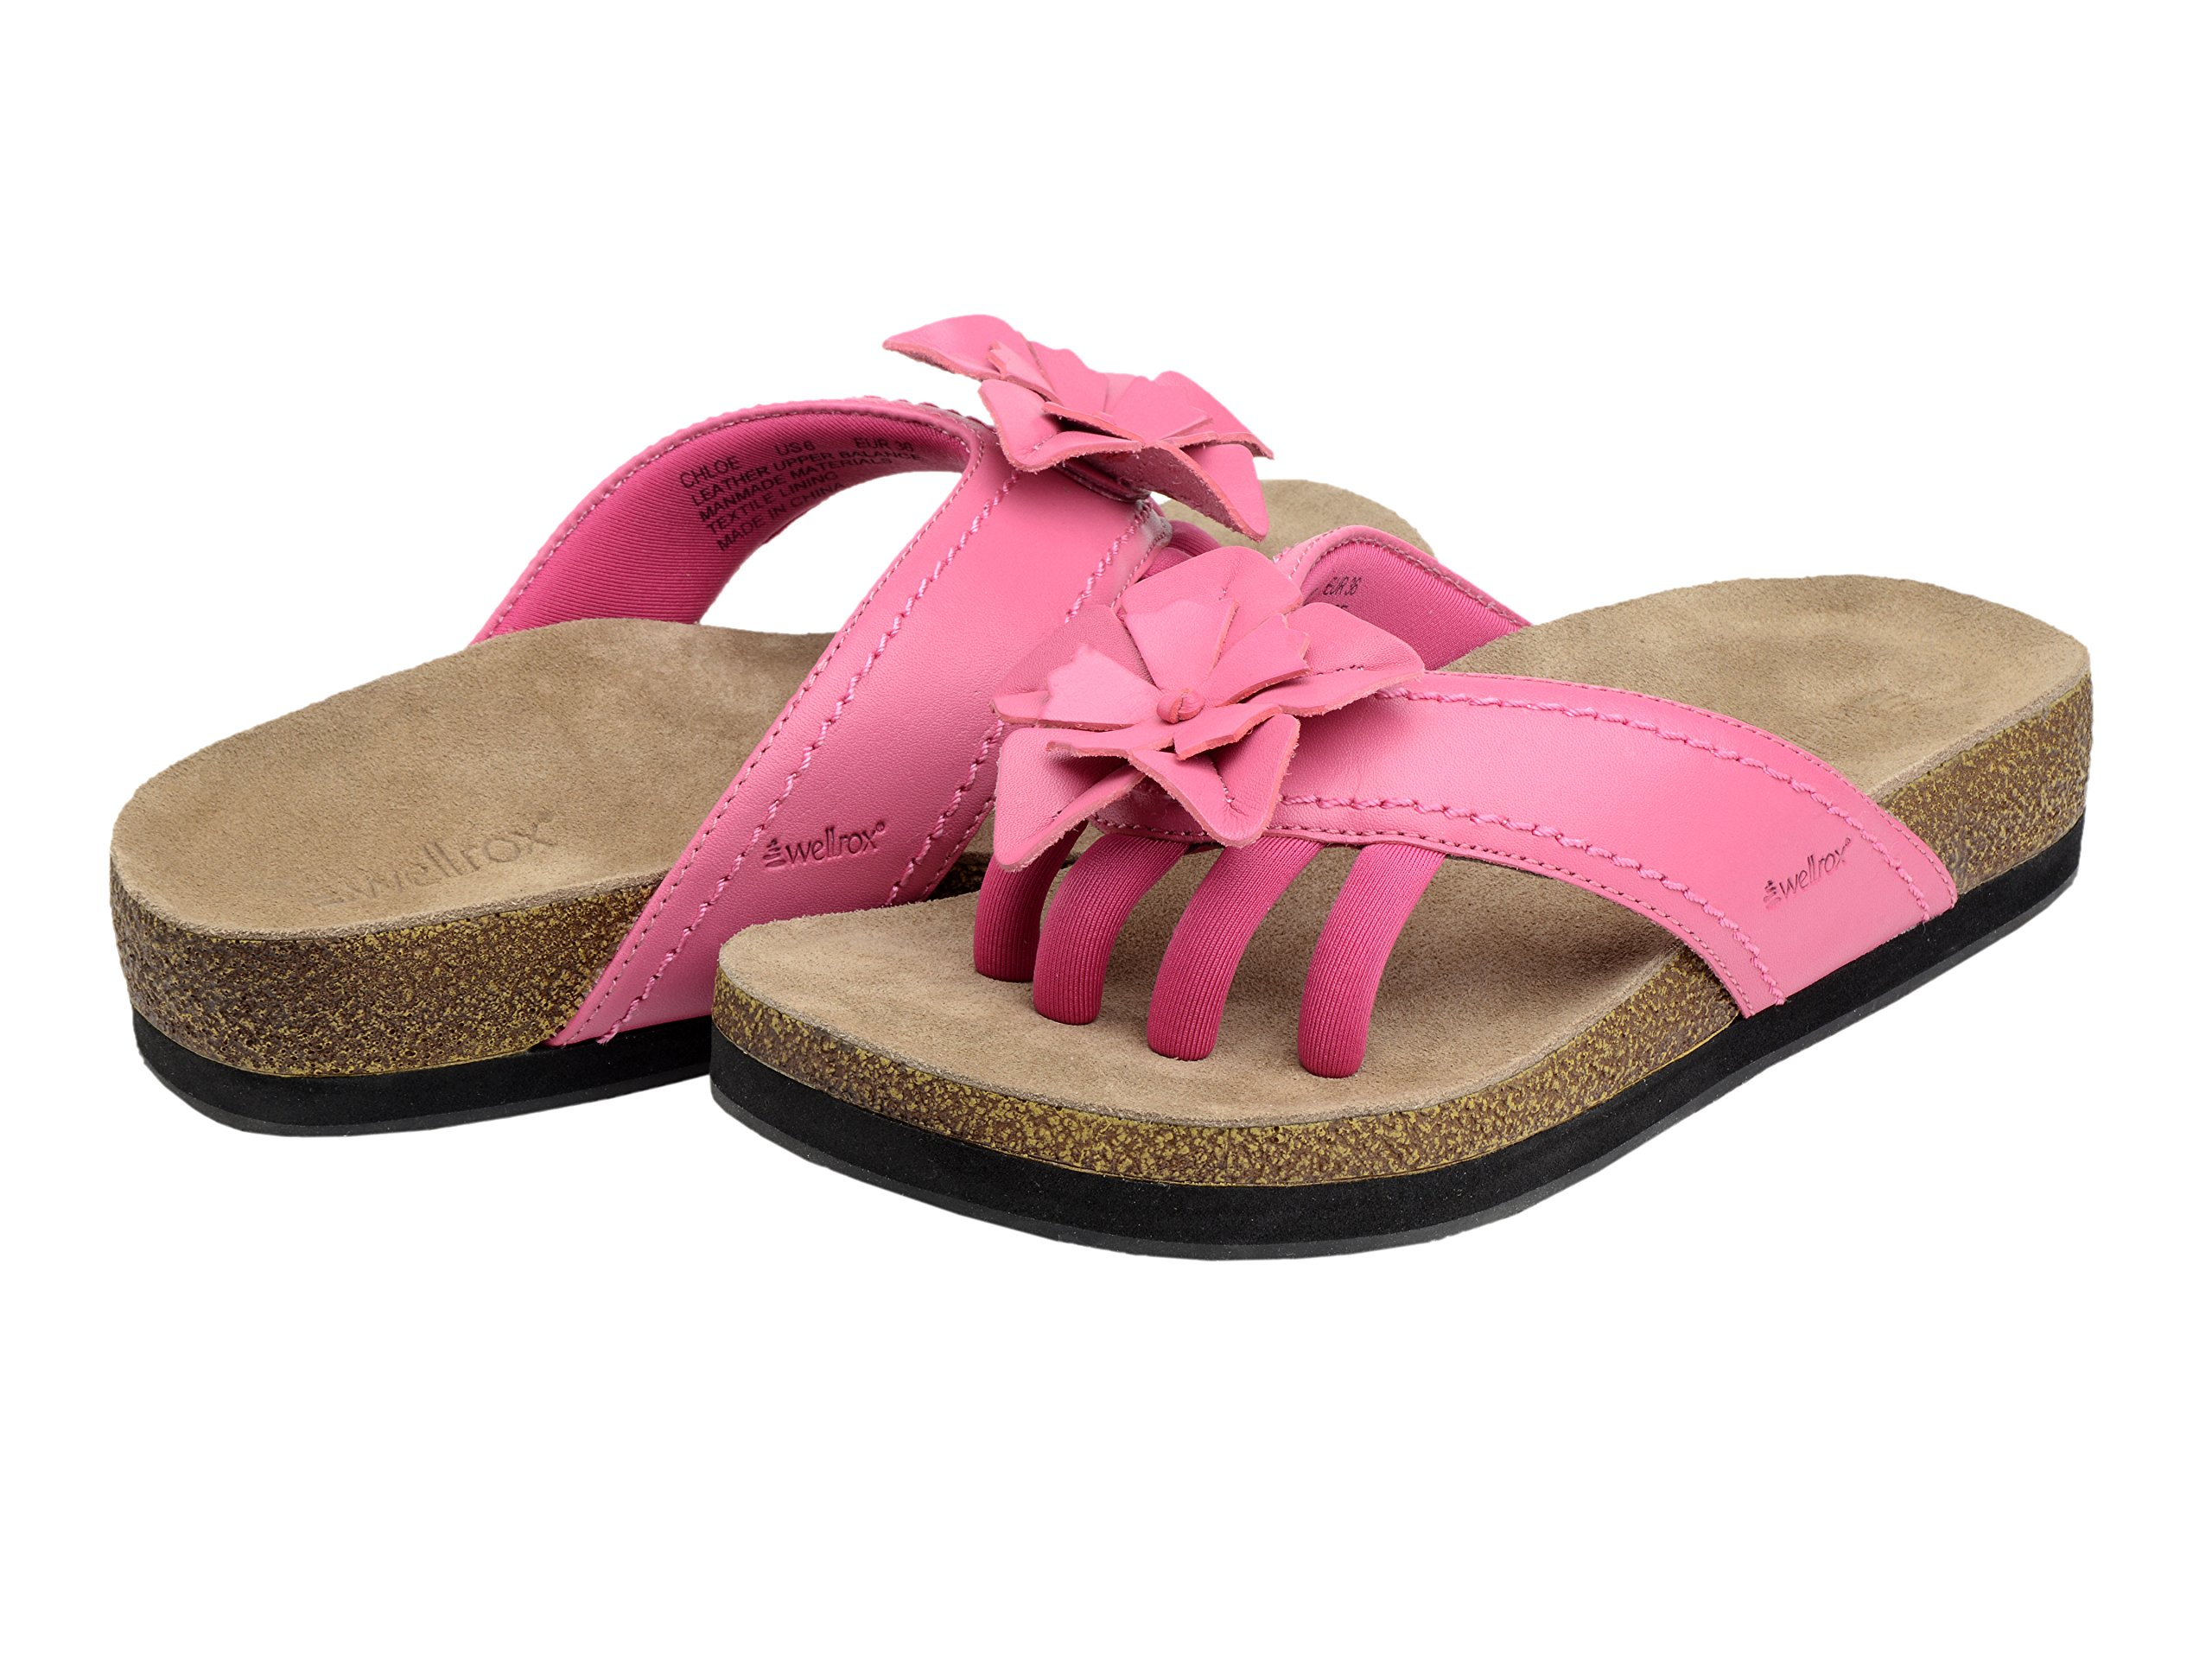 Wellrox Women's Terra-Chloe Hot Pink Casual Sandal 11 by Wellrox (Image #6)